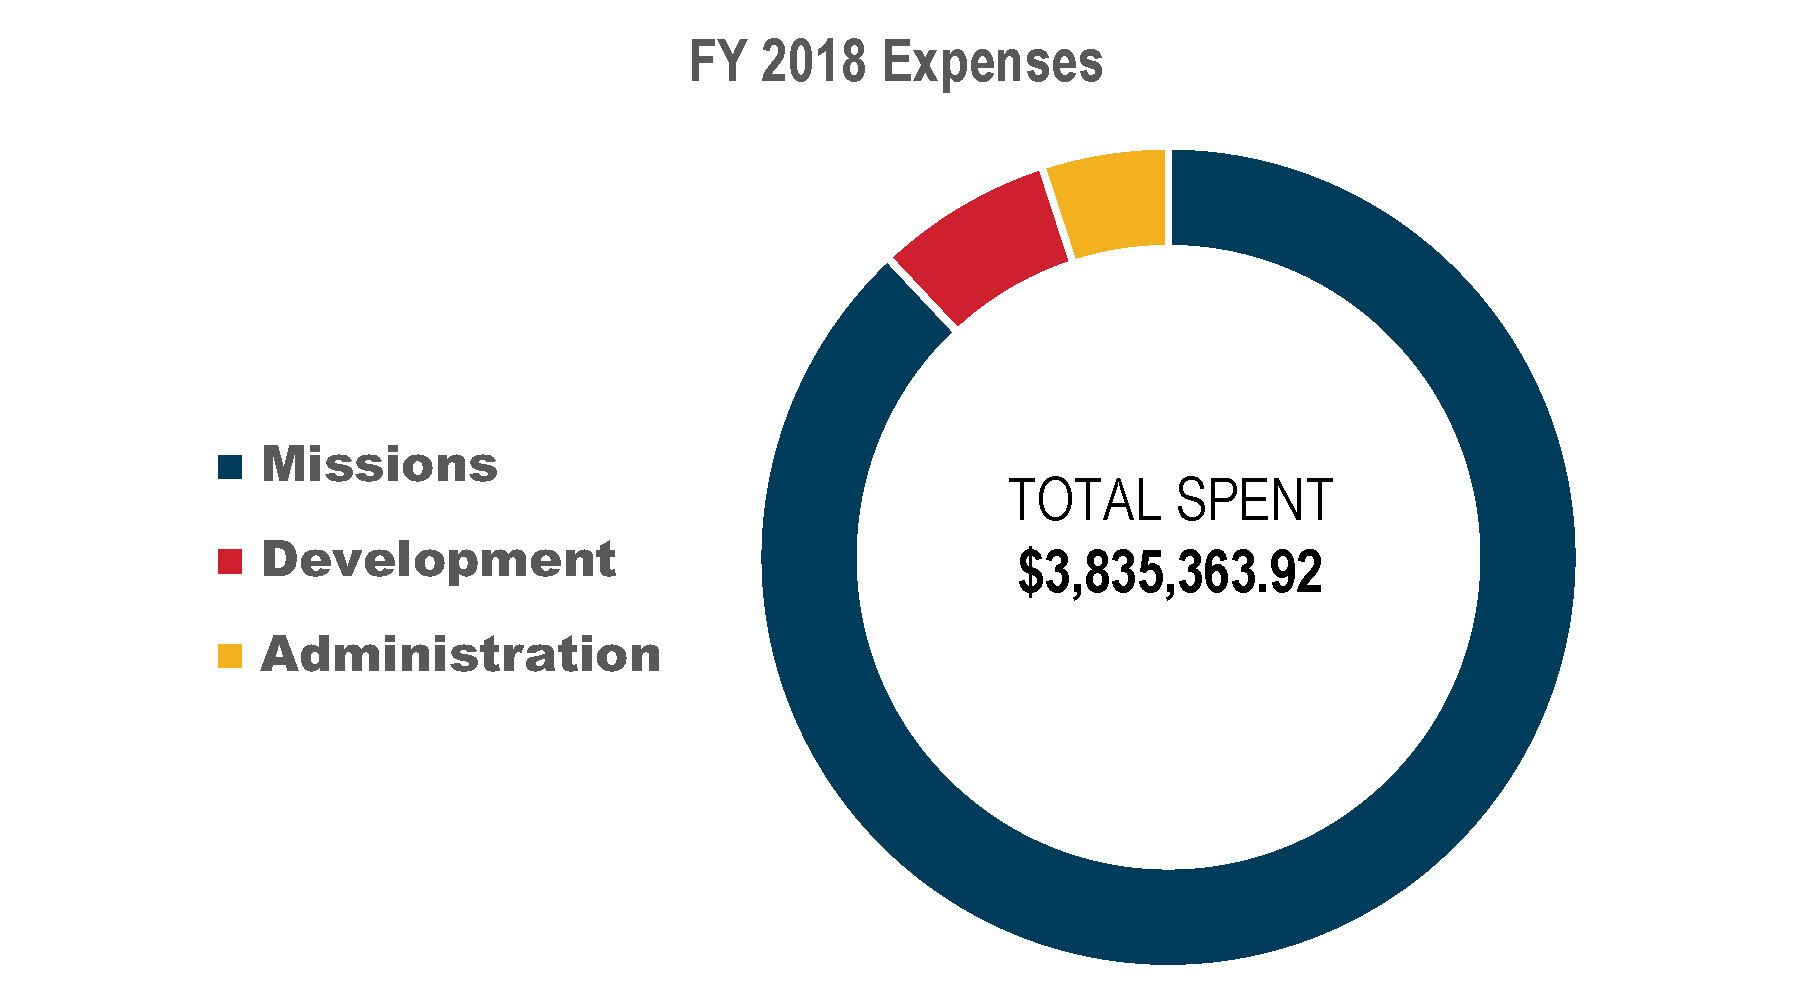 fY 2018 Expense Chart 2